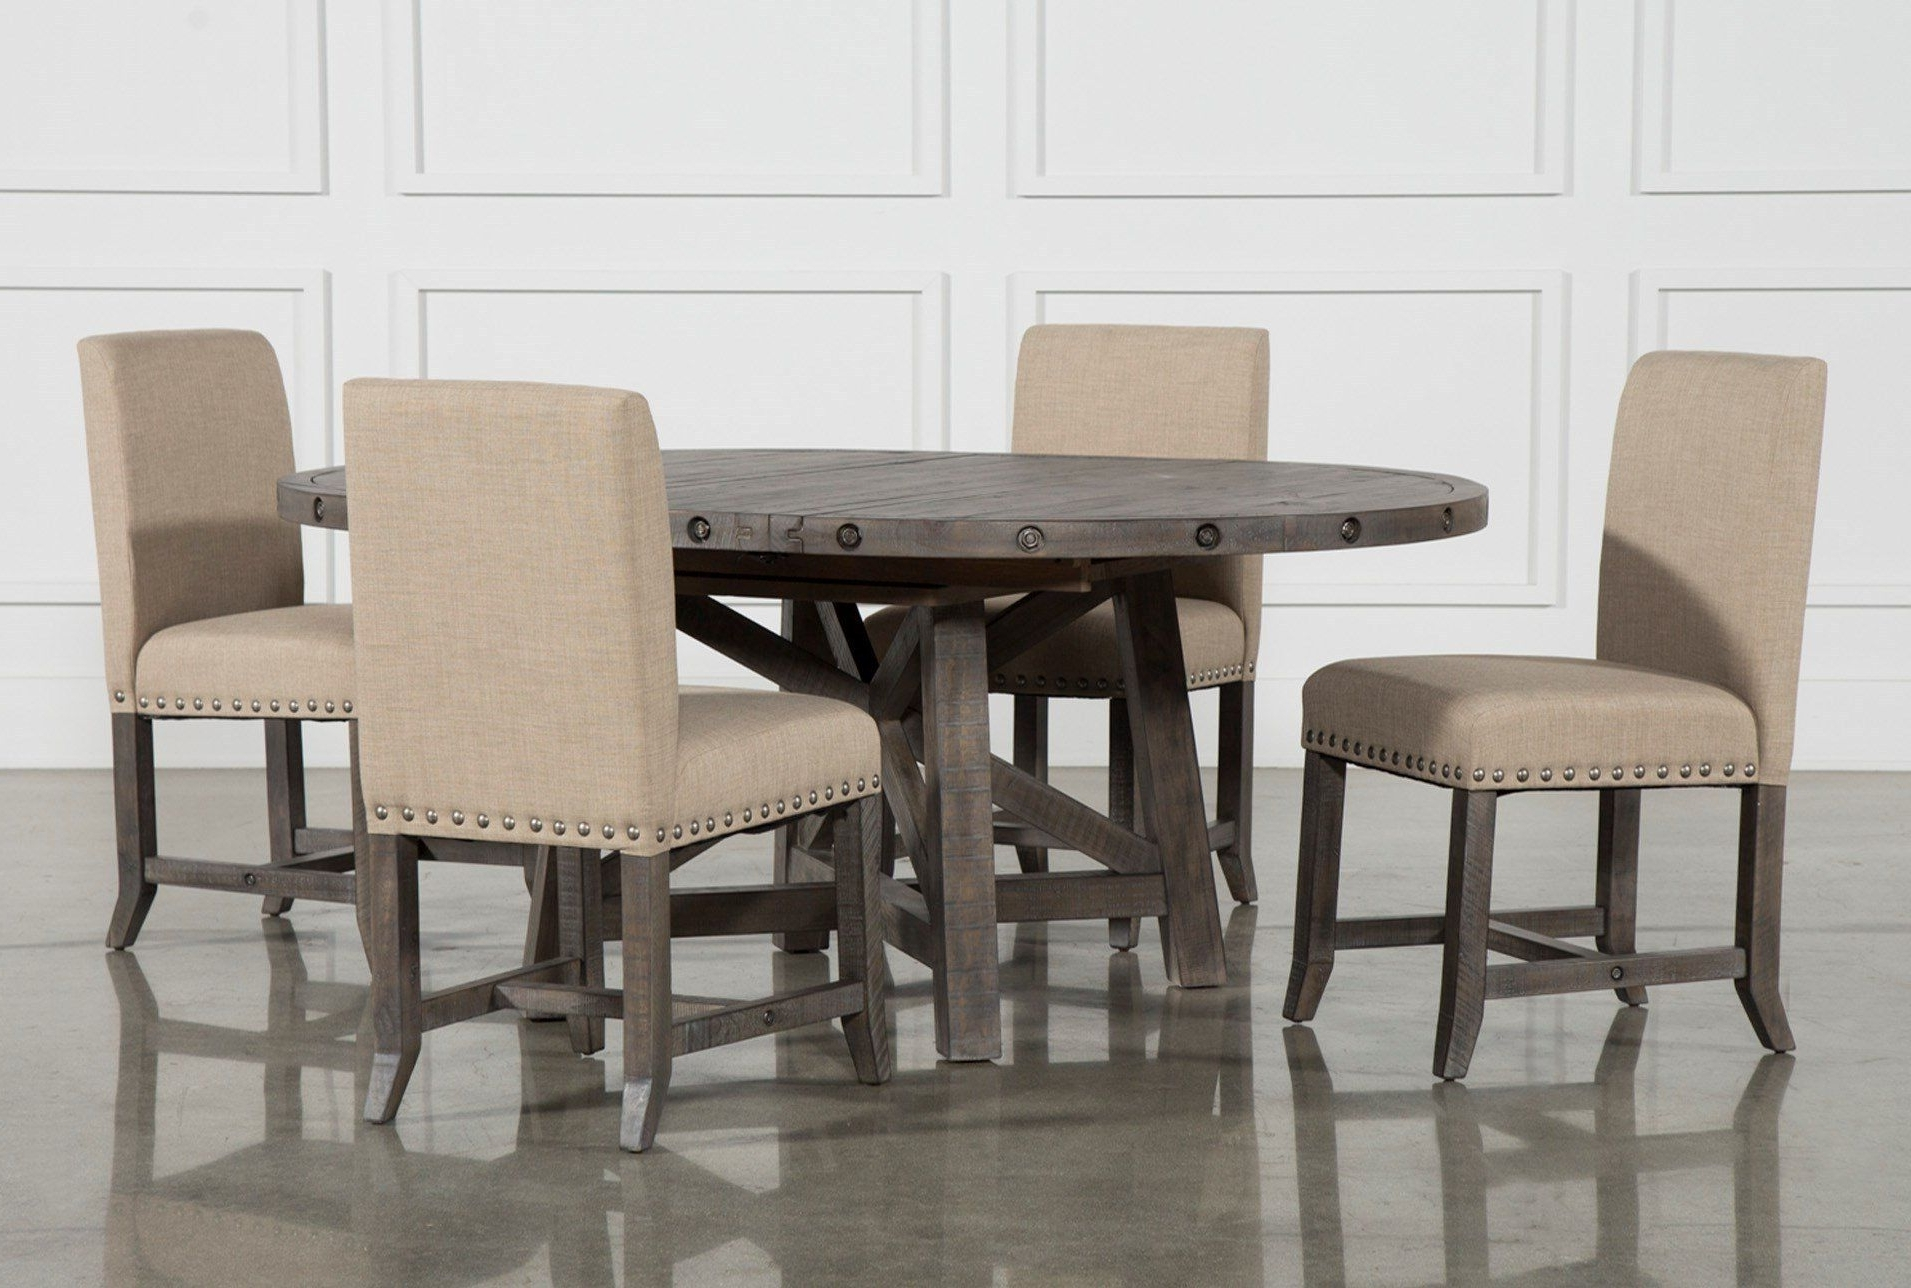 Jaxon Grey 5 Piece Round Extension Dining Set W/upholstered Chairs regarding Recent Combs 5 Piece Dining Sets With  Mindy Slipcovered Chairs